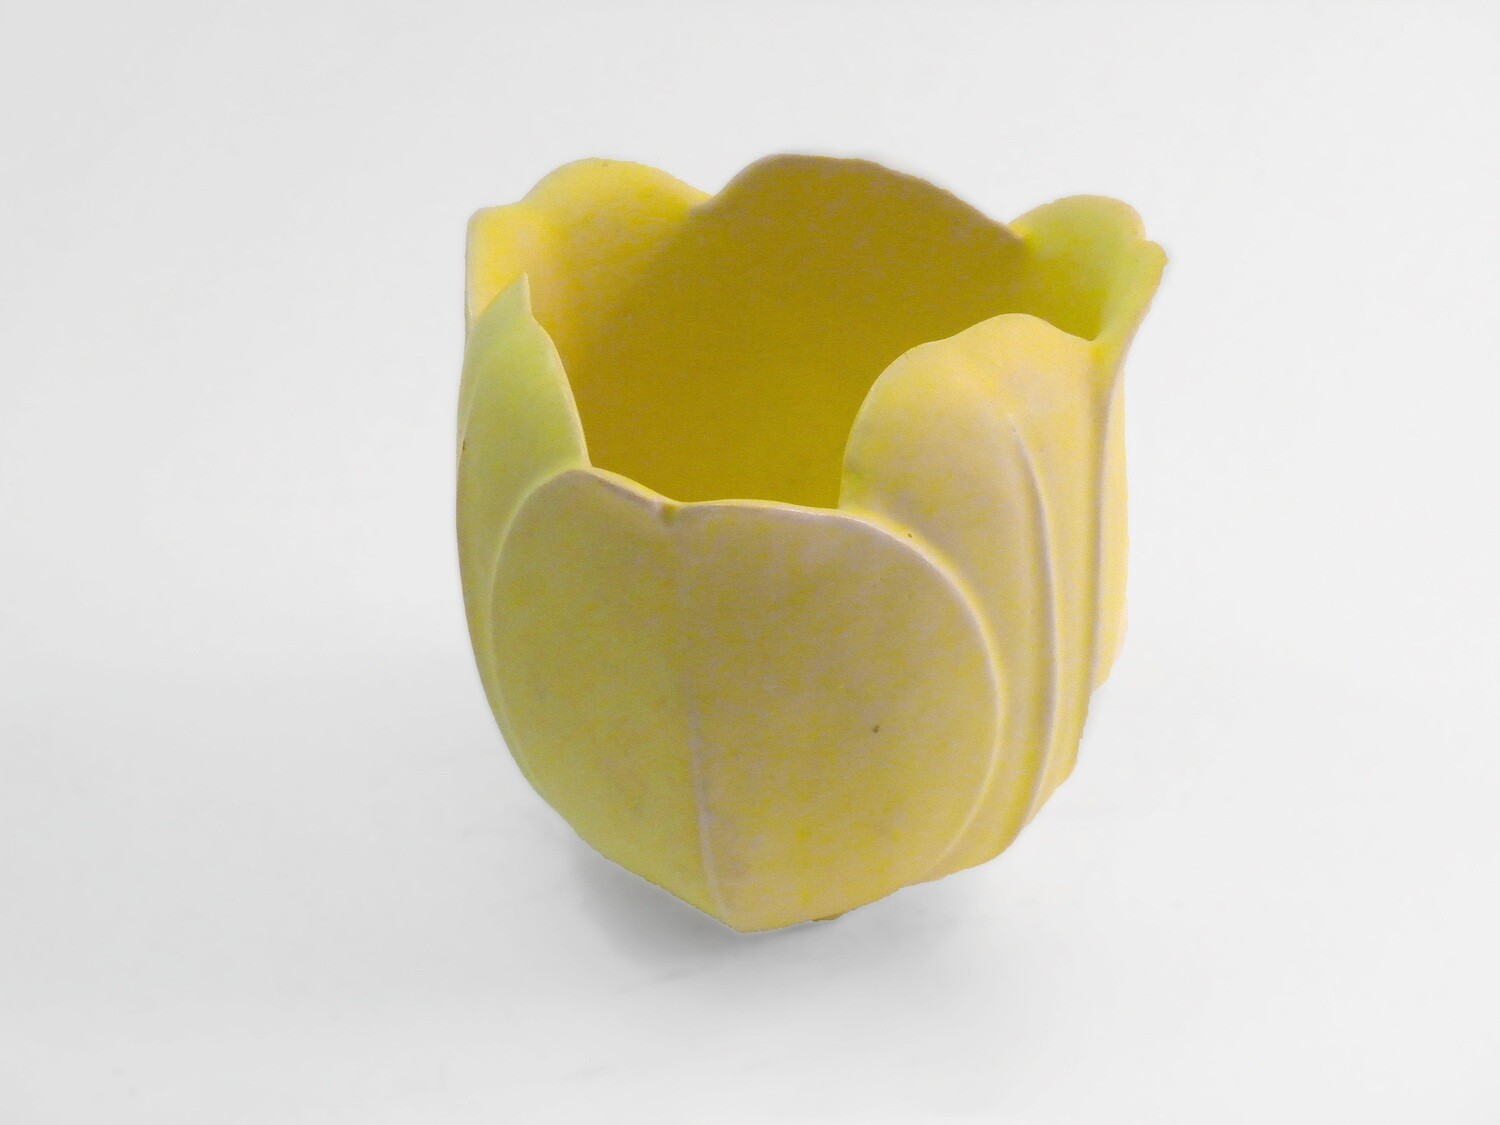 Tulip Vase in Rare Yellow Glaze